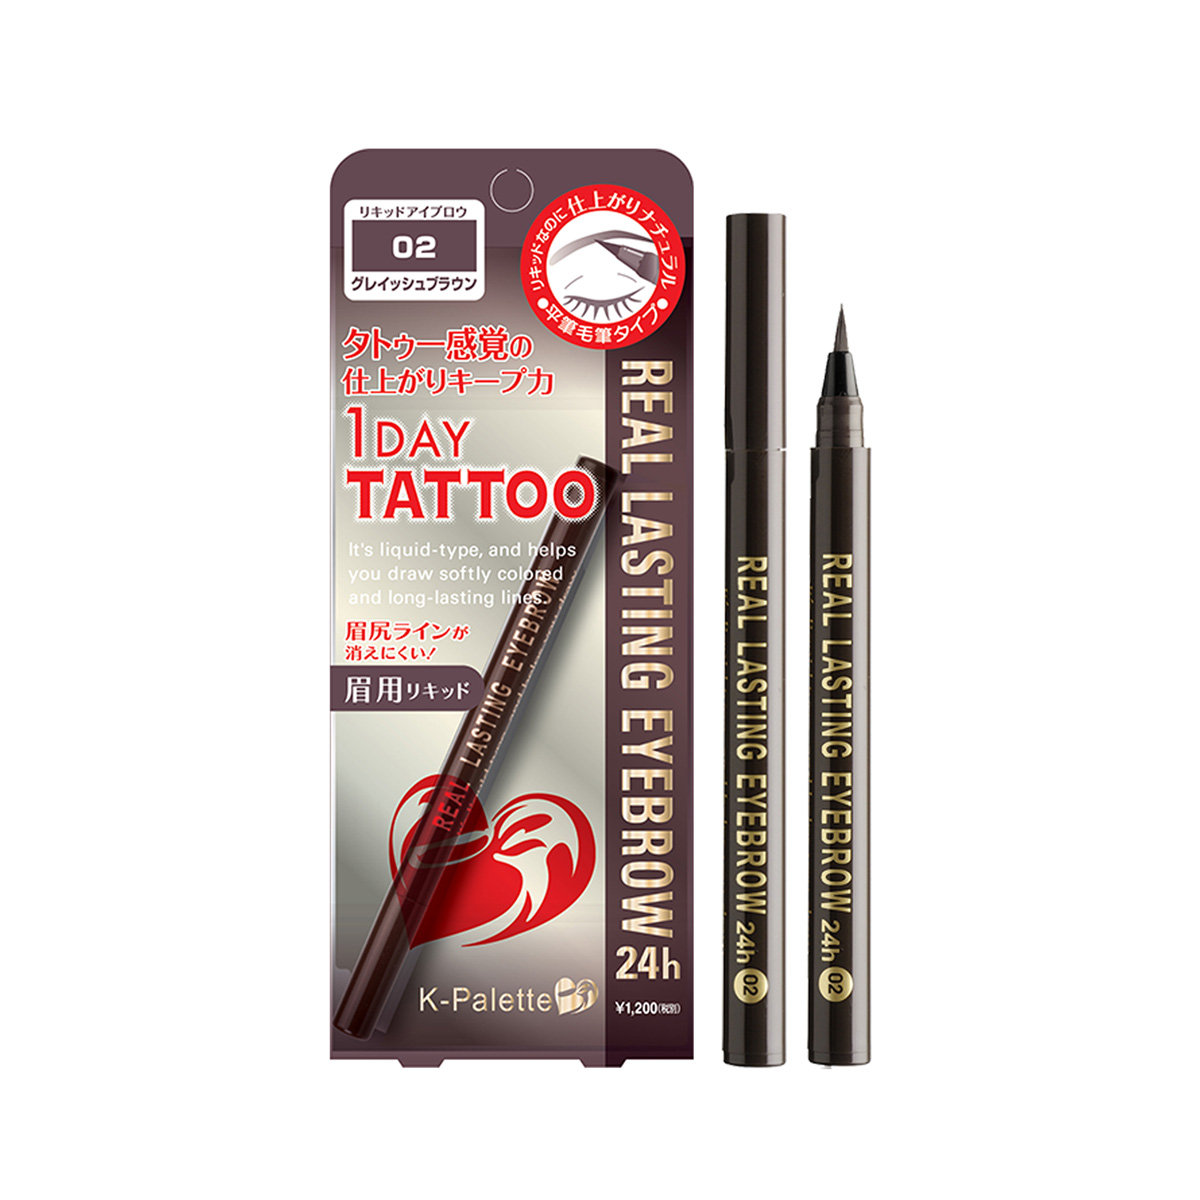 1DAY Tattoo Real Lasting Eyebrow Liner 24h in Grayish Brown